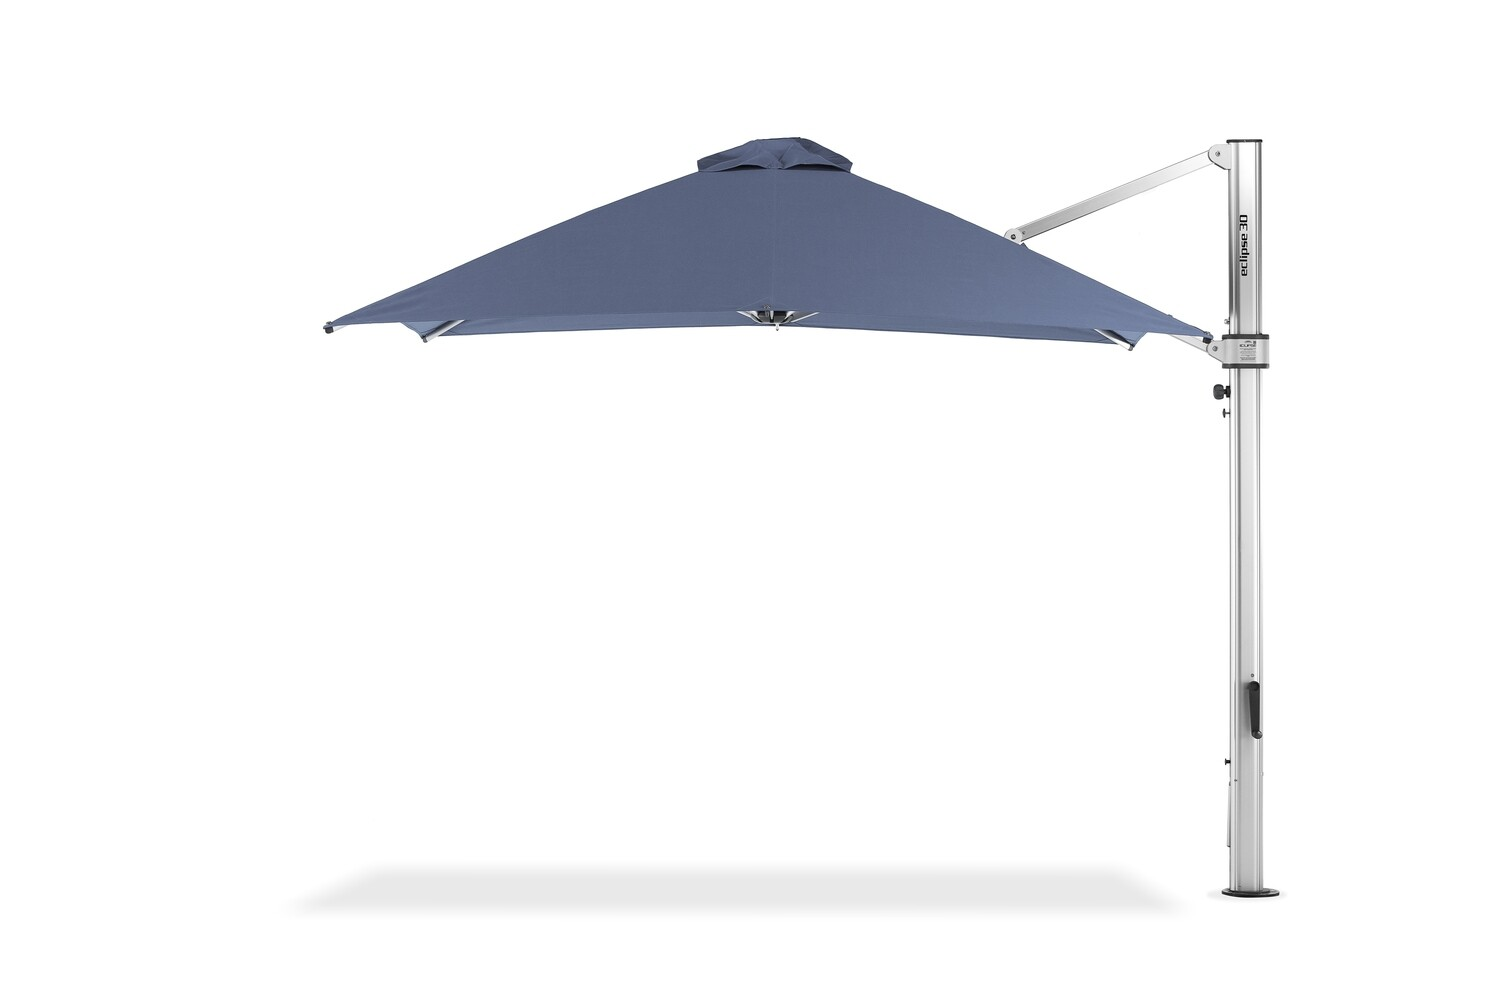 Eclipse 10' Cantilever Square Market Umbrella